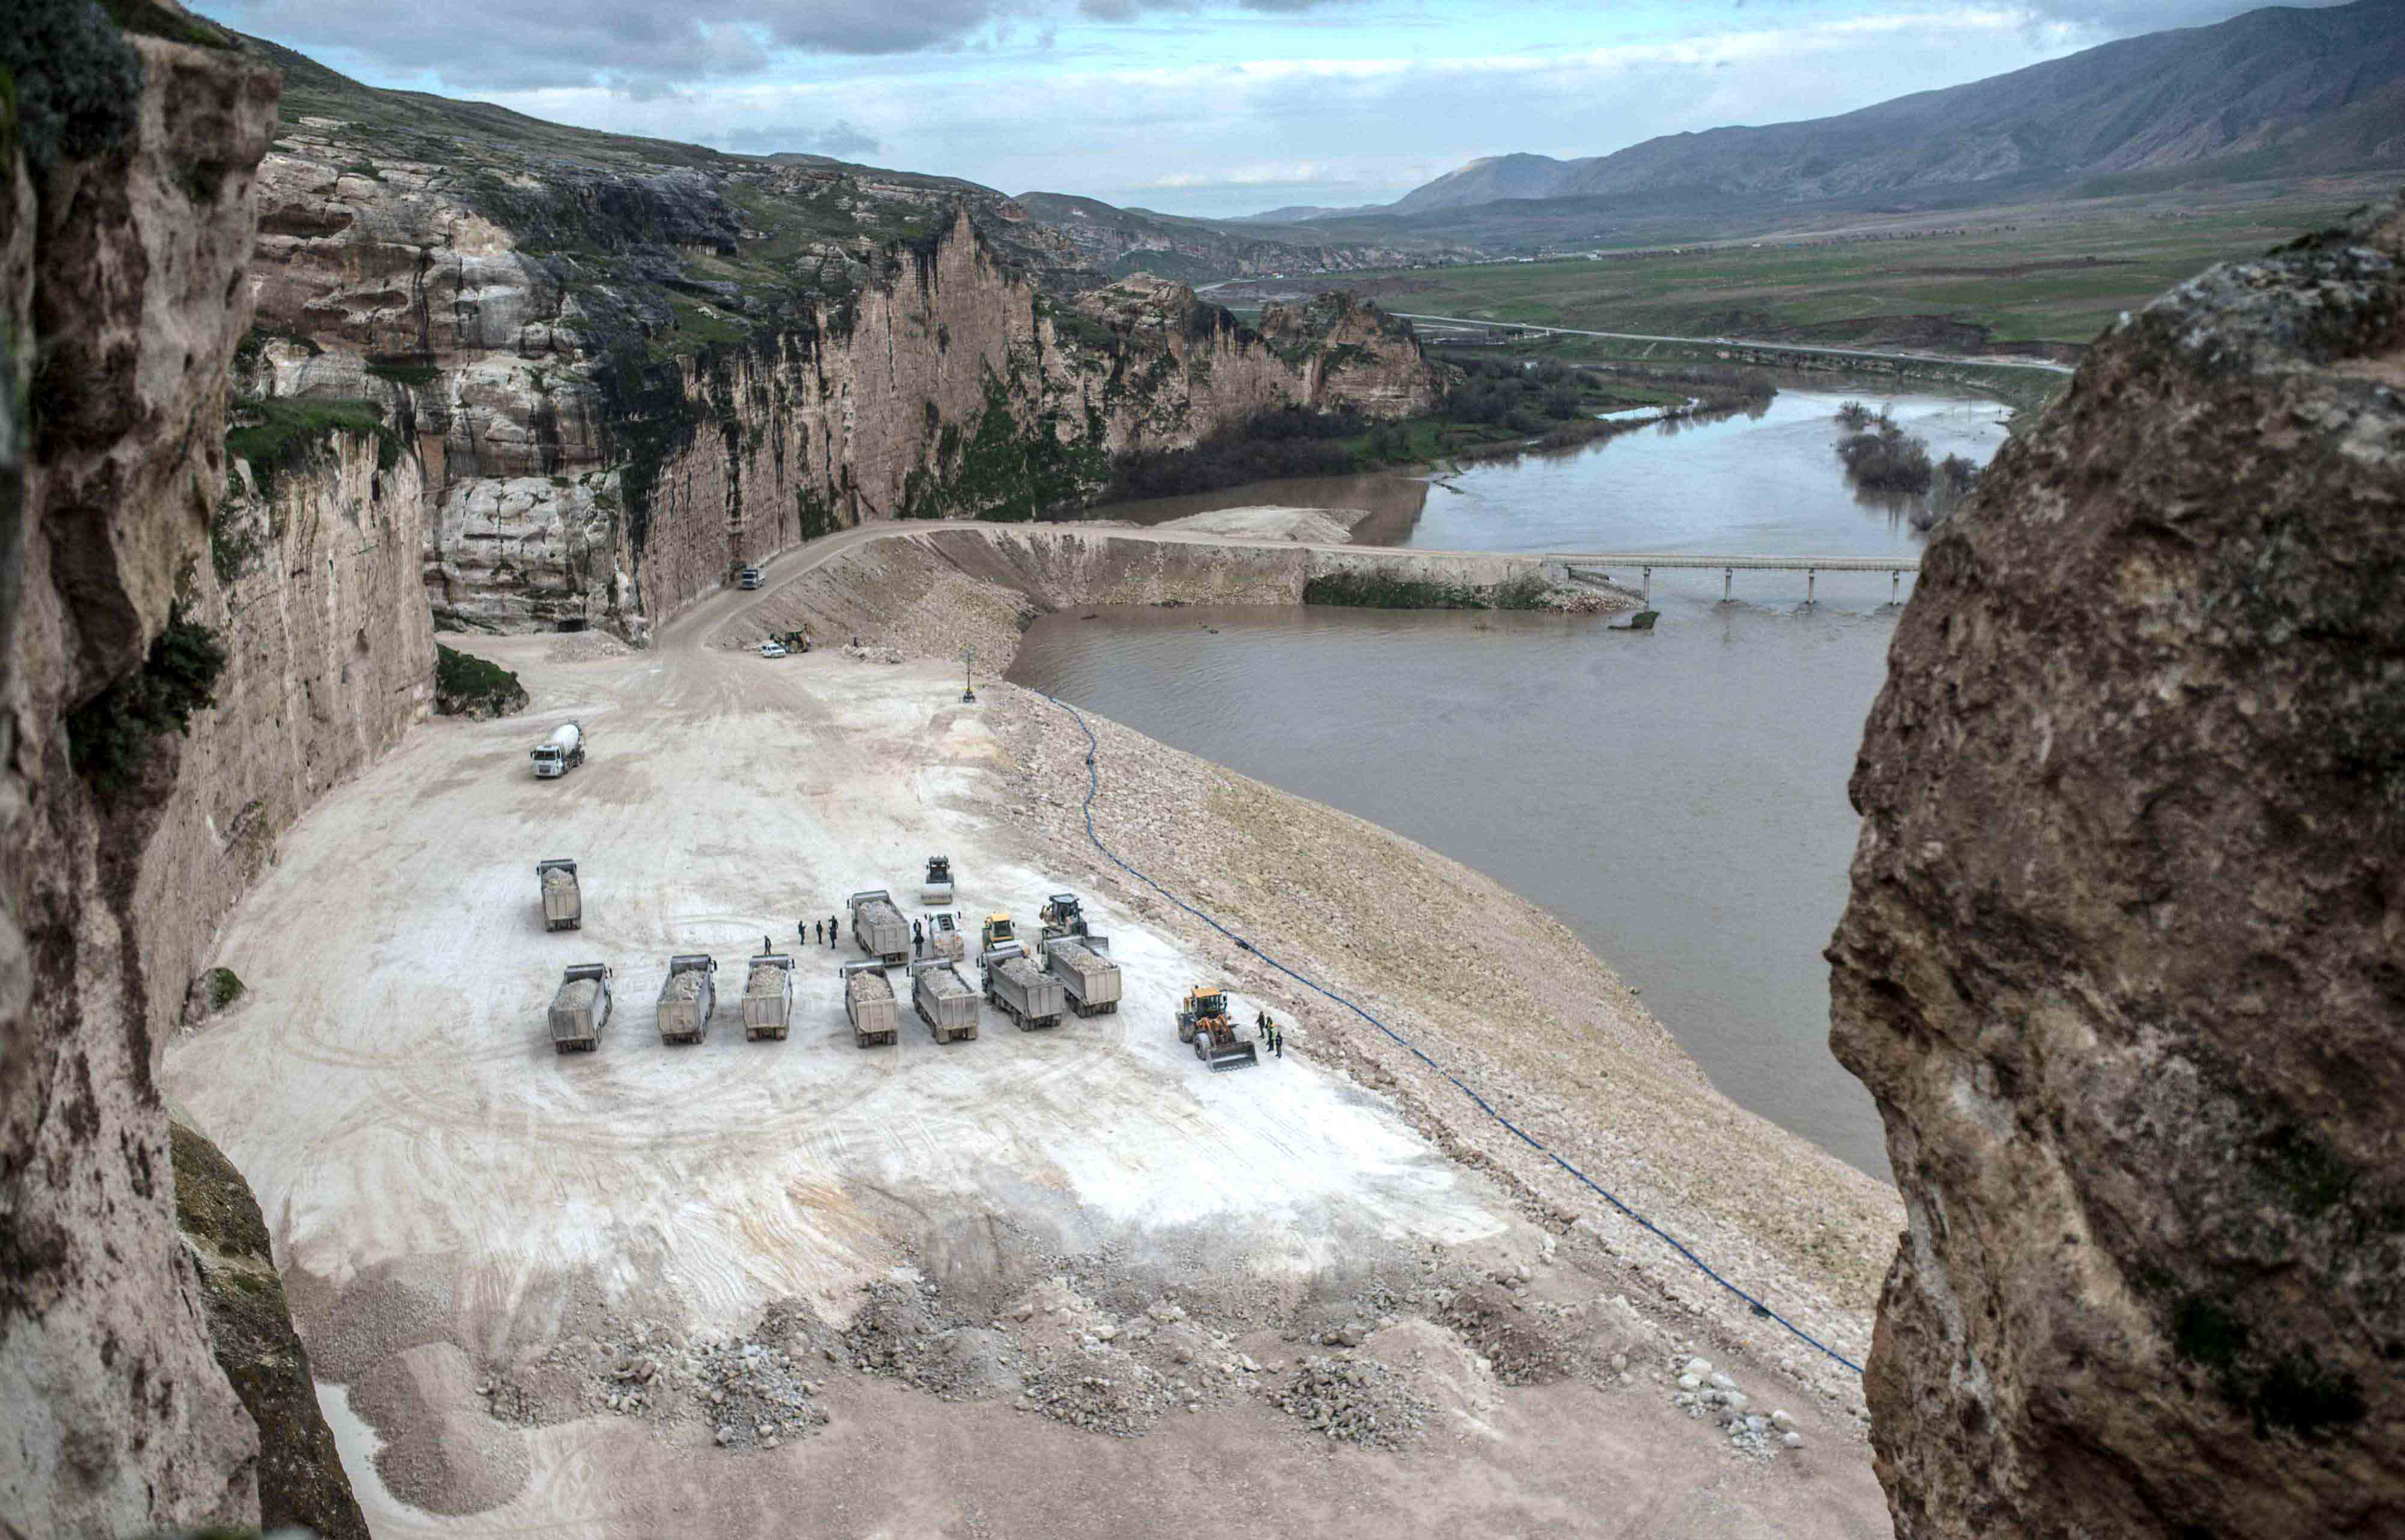 Trucks are seen on the banks of the Tigris River near Hasankeyf, last December. (AFP)